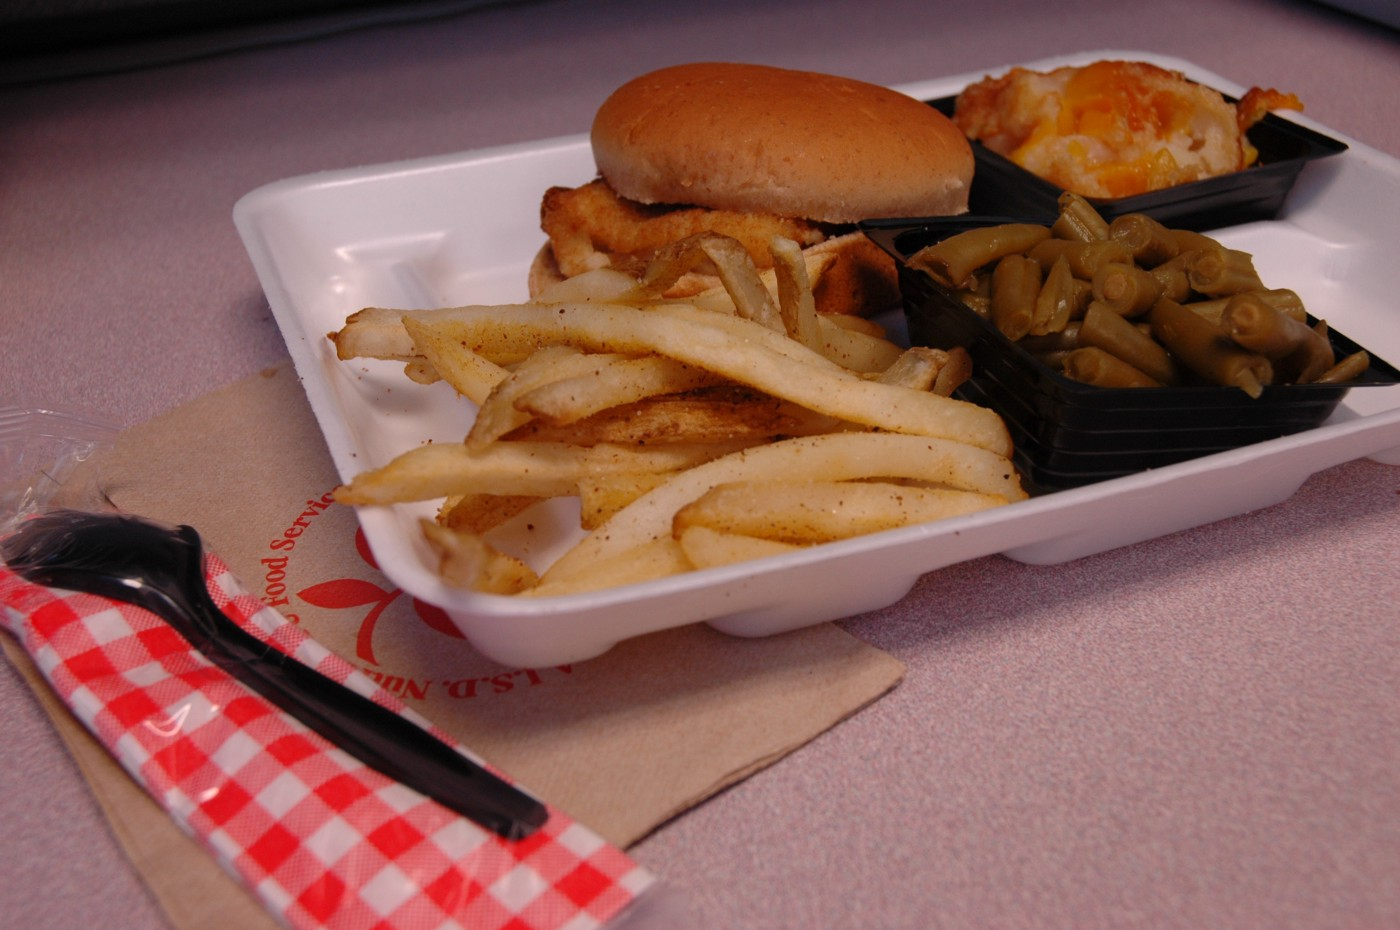 school lunch in a styrofoam tray including a fried chicken sandwich, french fries, and green beans